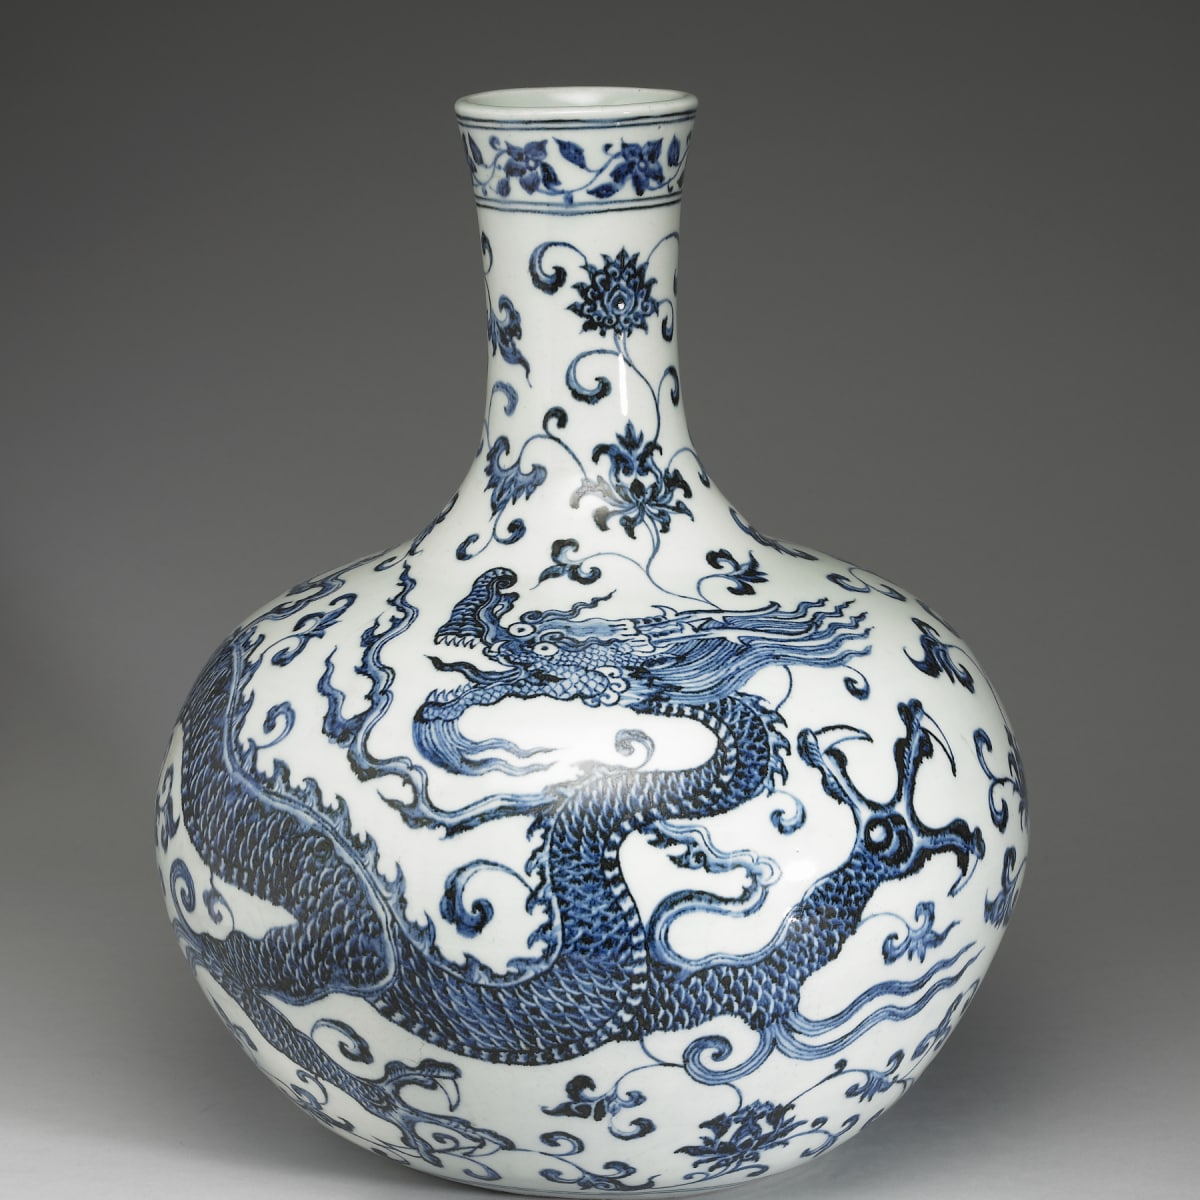 Vase with flying dragon, Ming Dynasty, Museum of Fine Arts